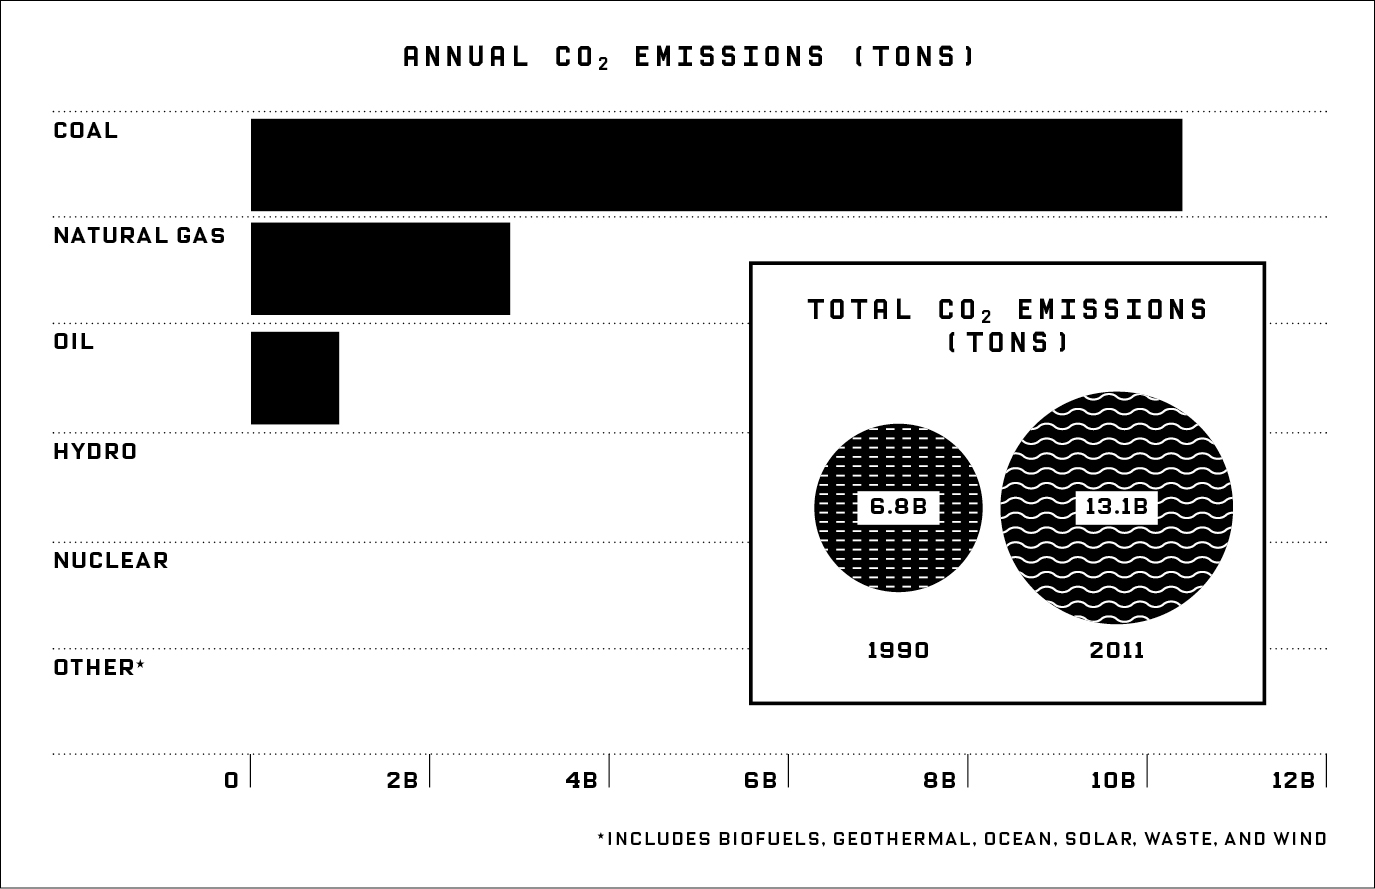 Annual CO2 Emissions by the Ton